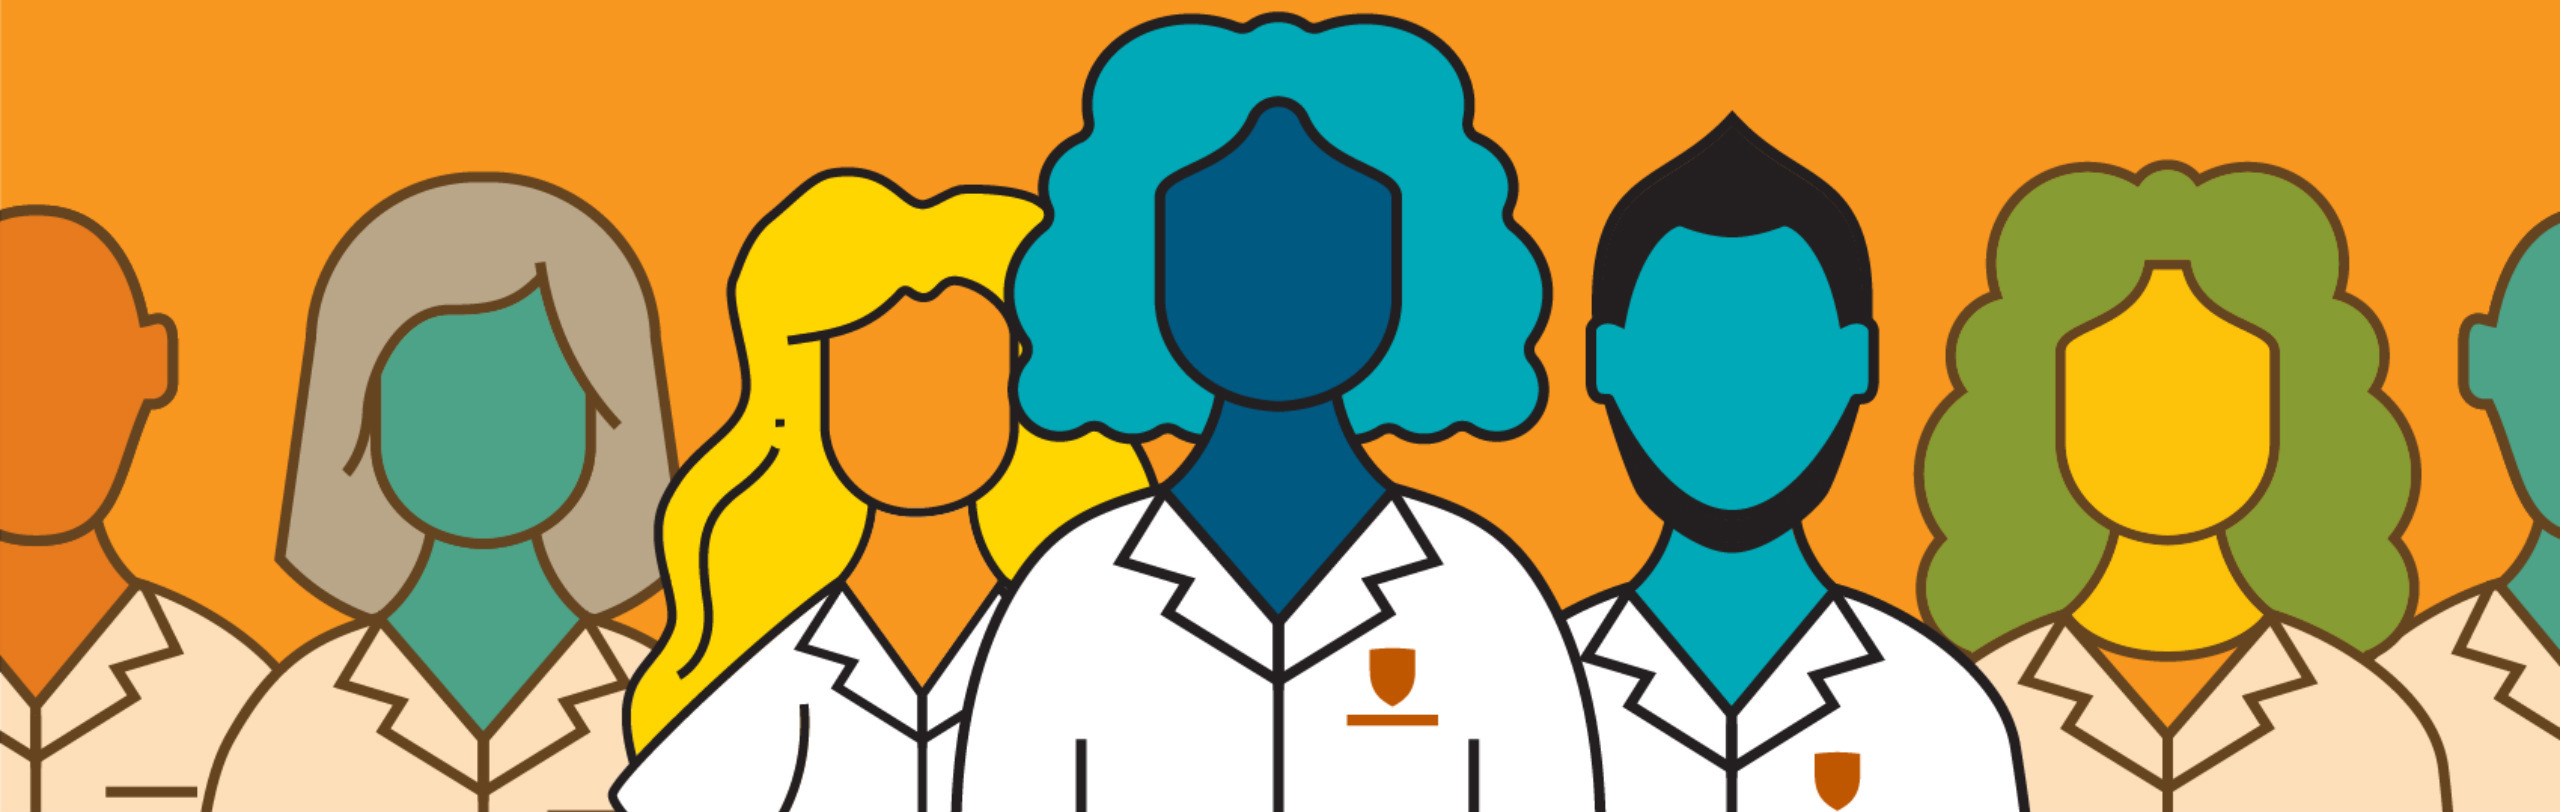 Seven physicians in a row. Illustration.